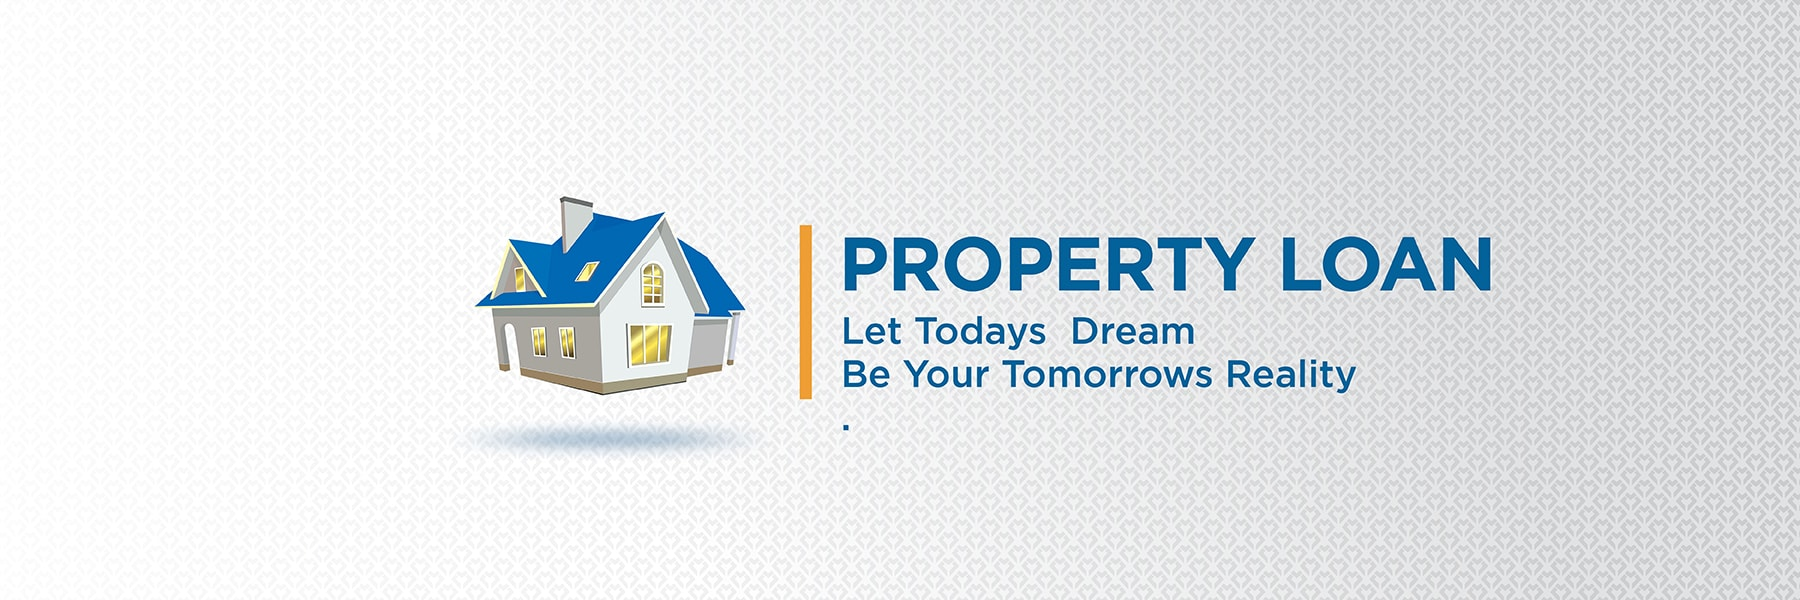 property loan